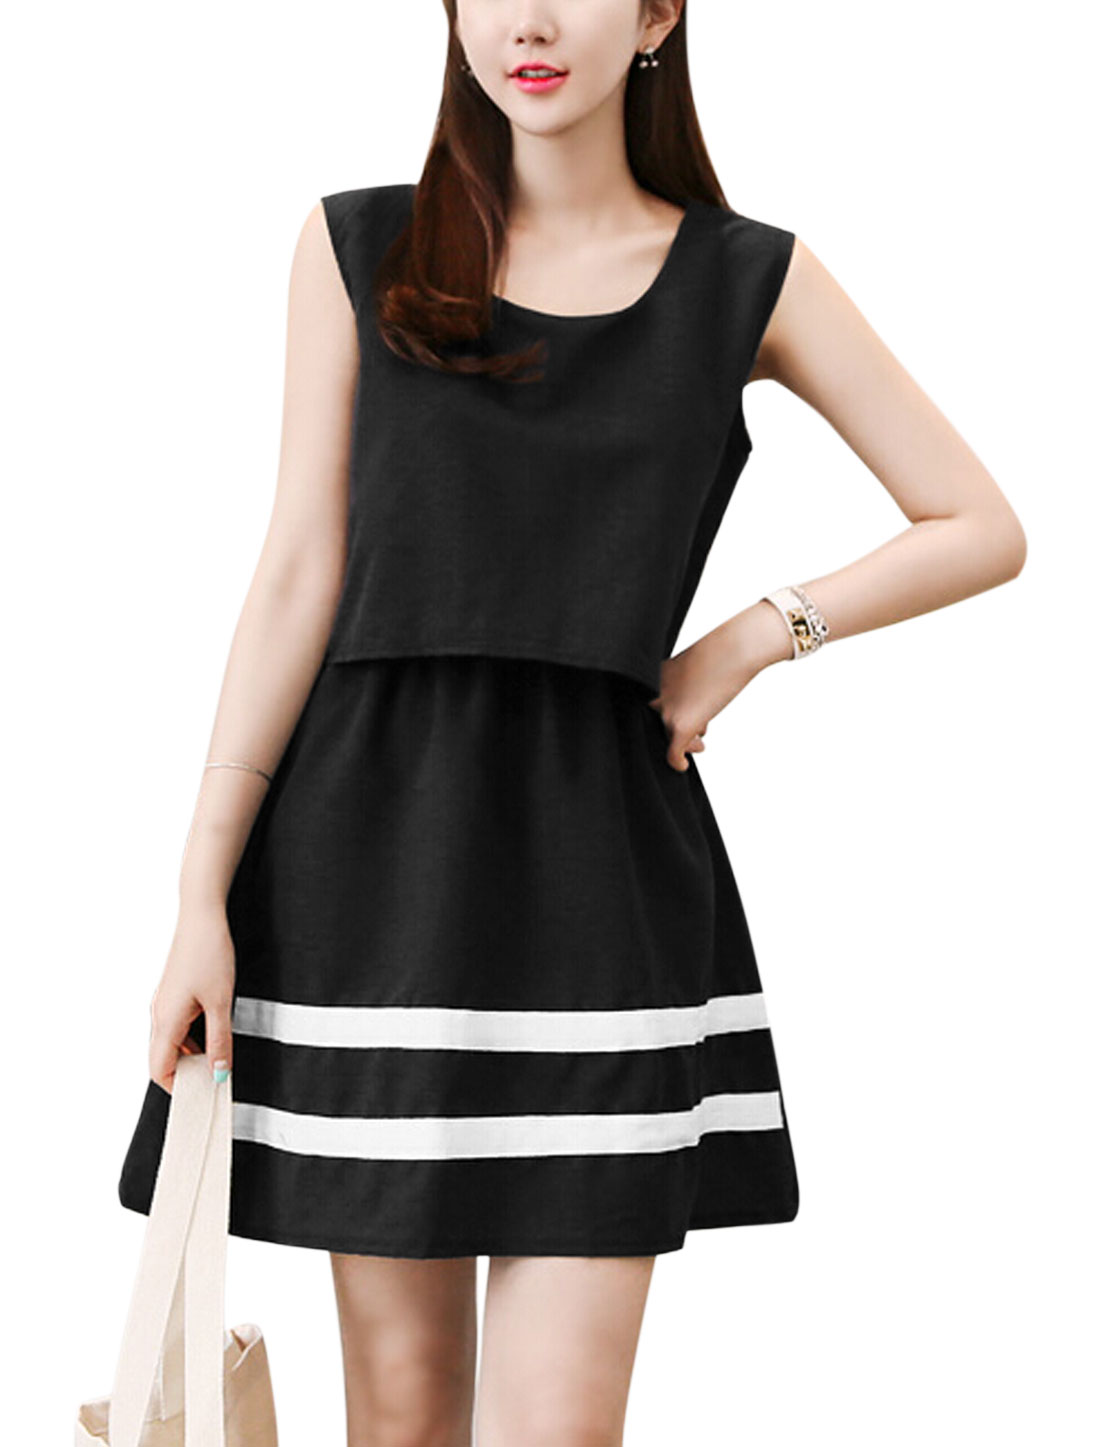 Women Sleeveless Panel Layered Casual A Line Dresses Black M